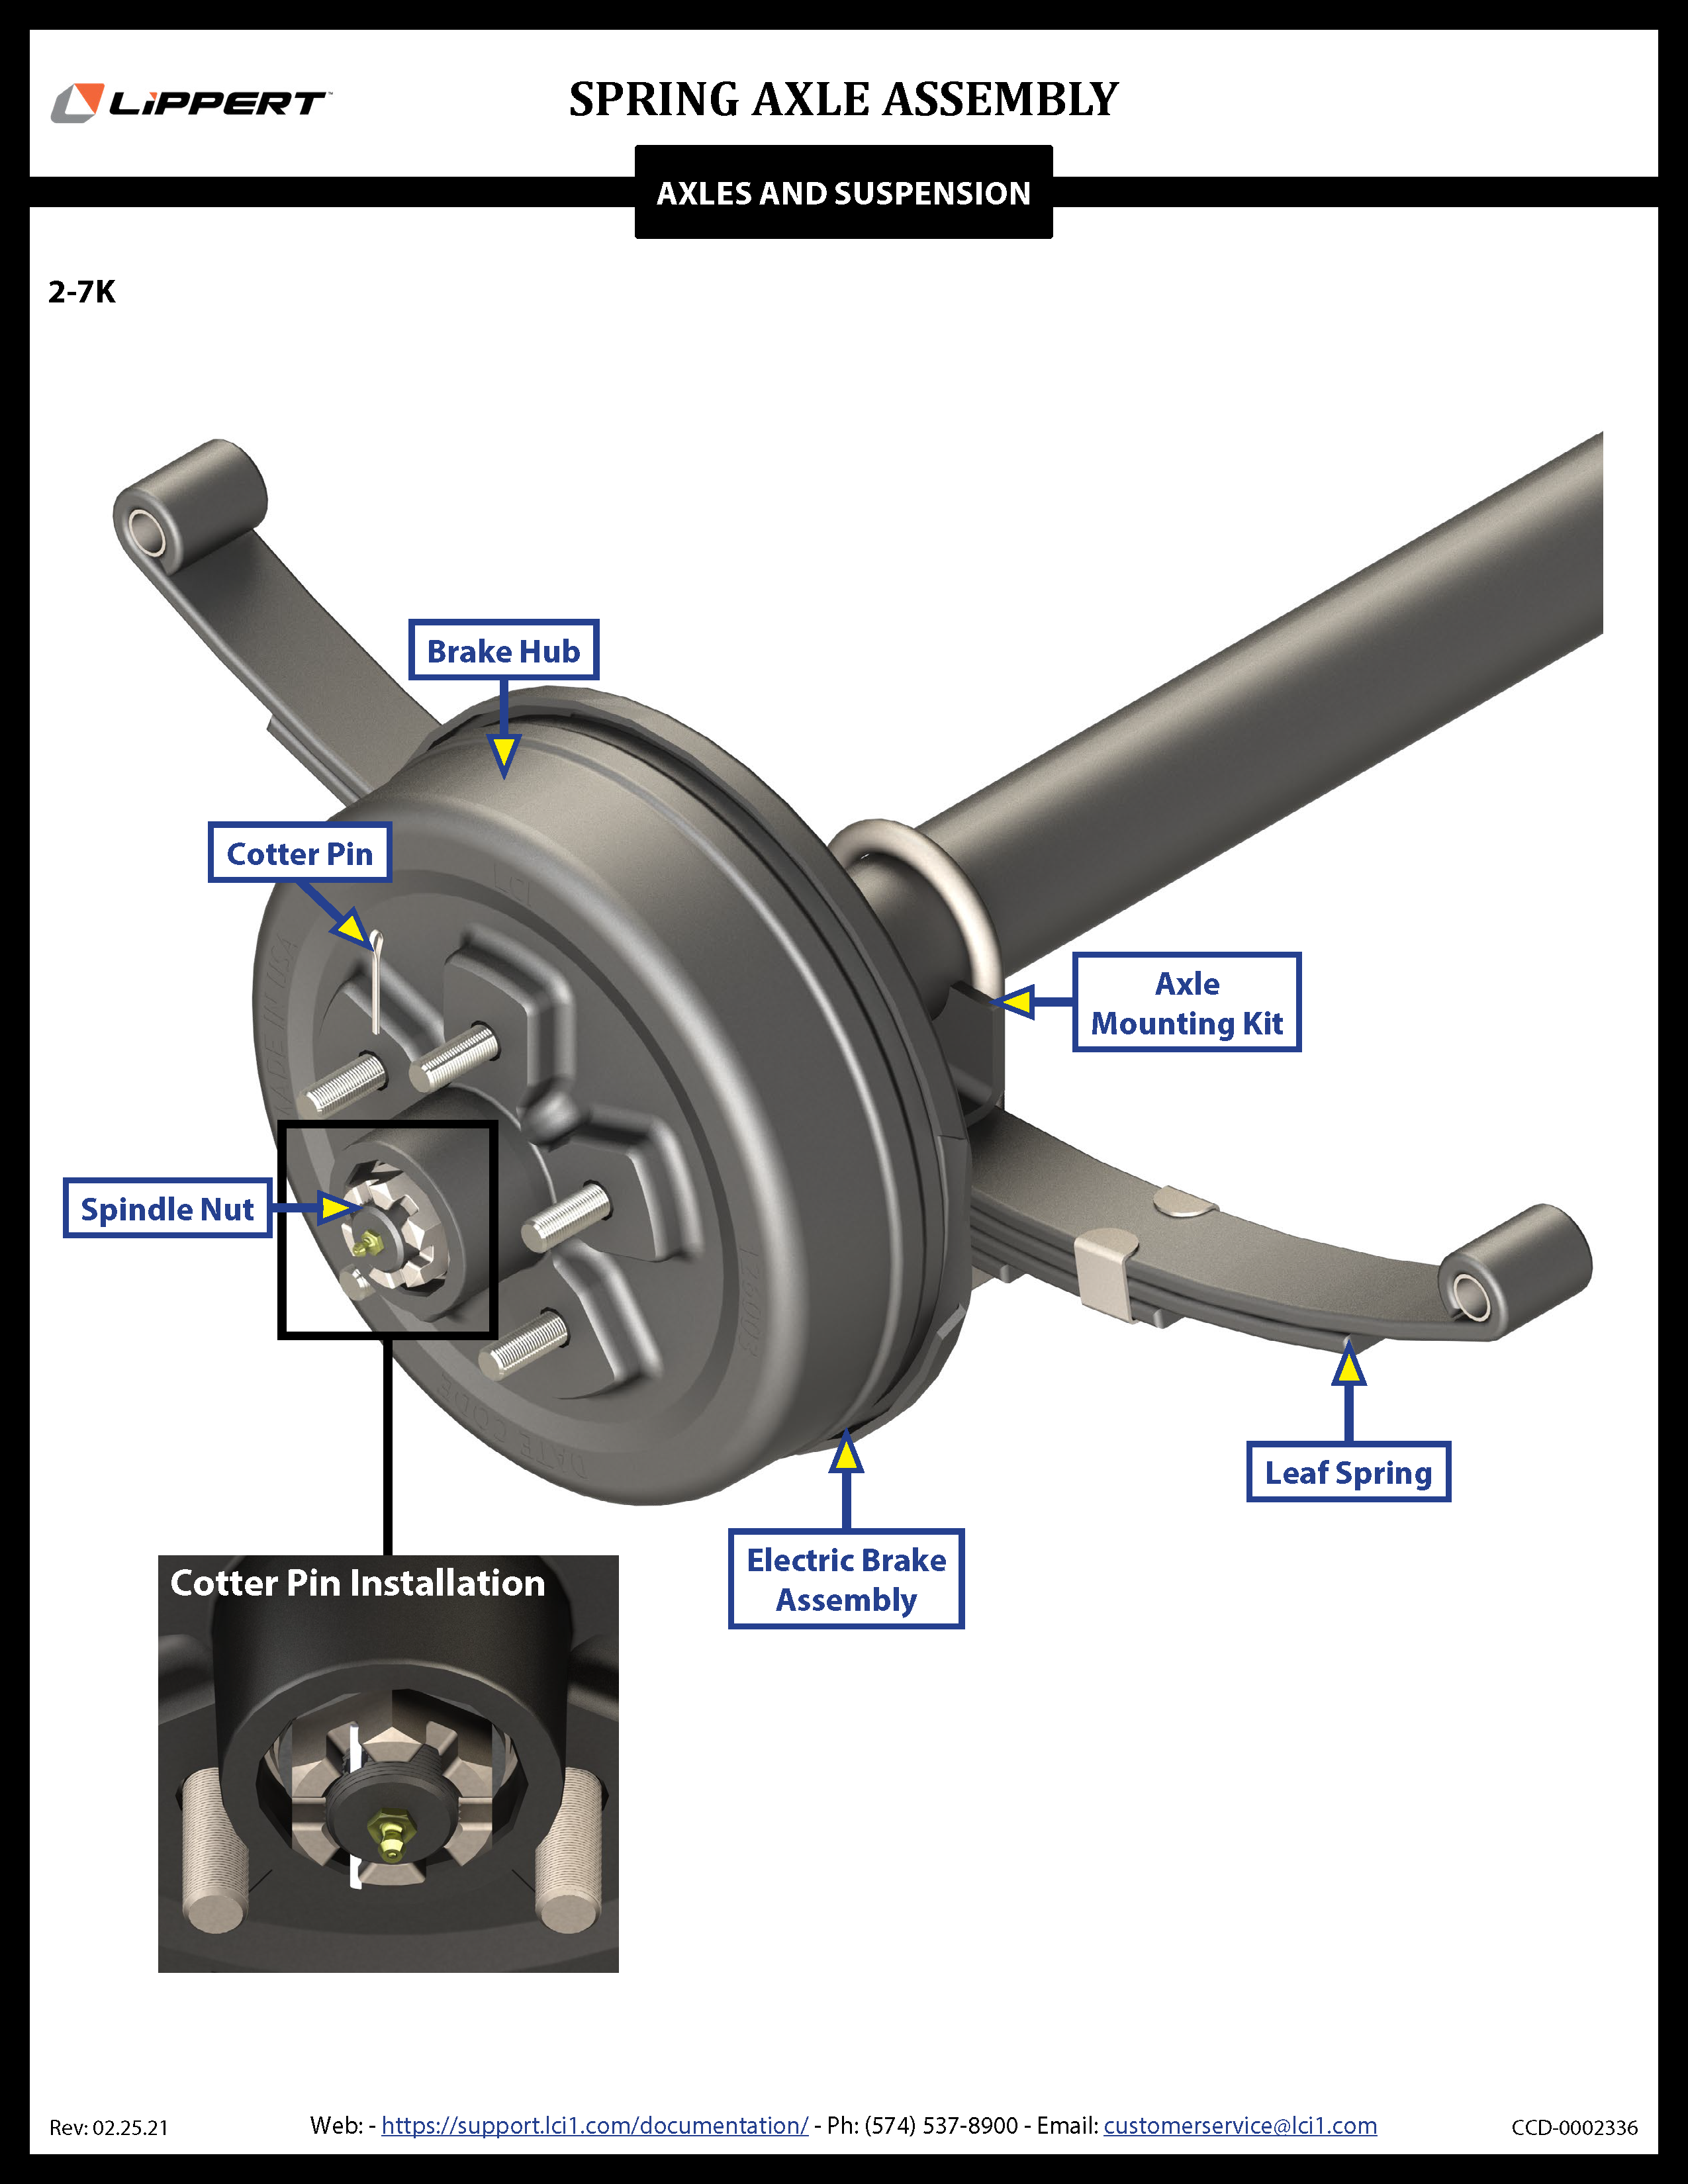 Spring Axle Assembly